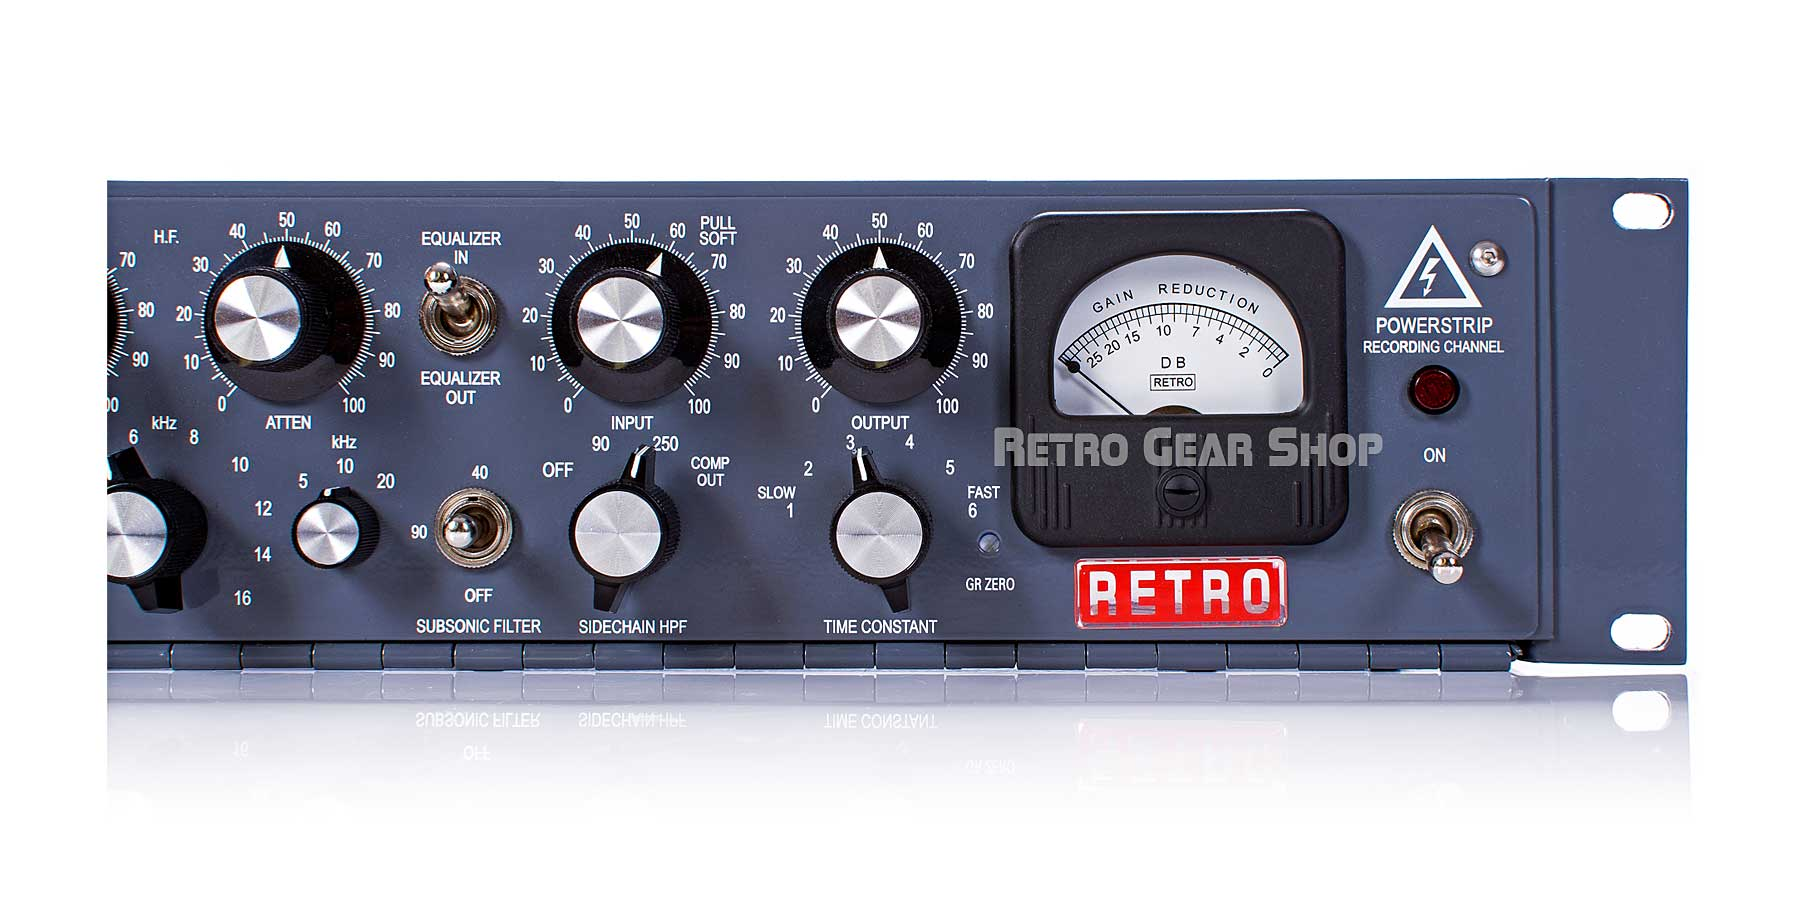 Retro Instruments Powerstrip Recording Channel VU Meter